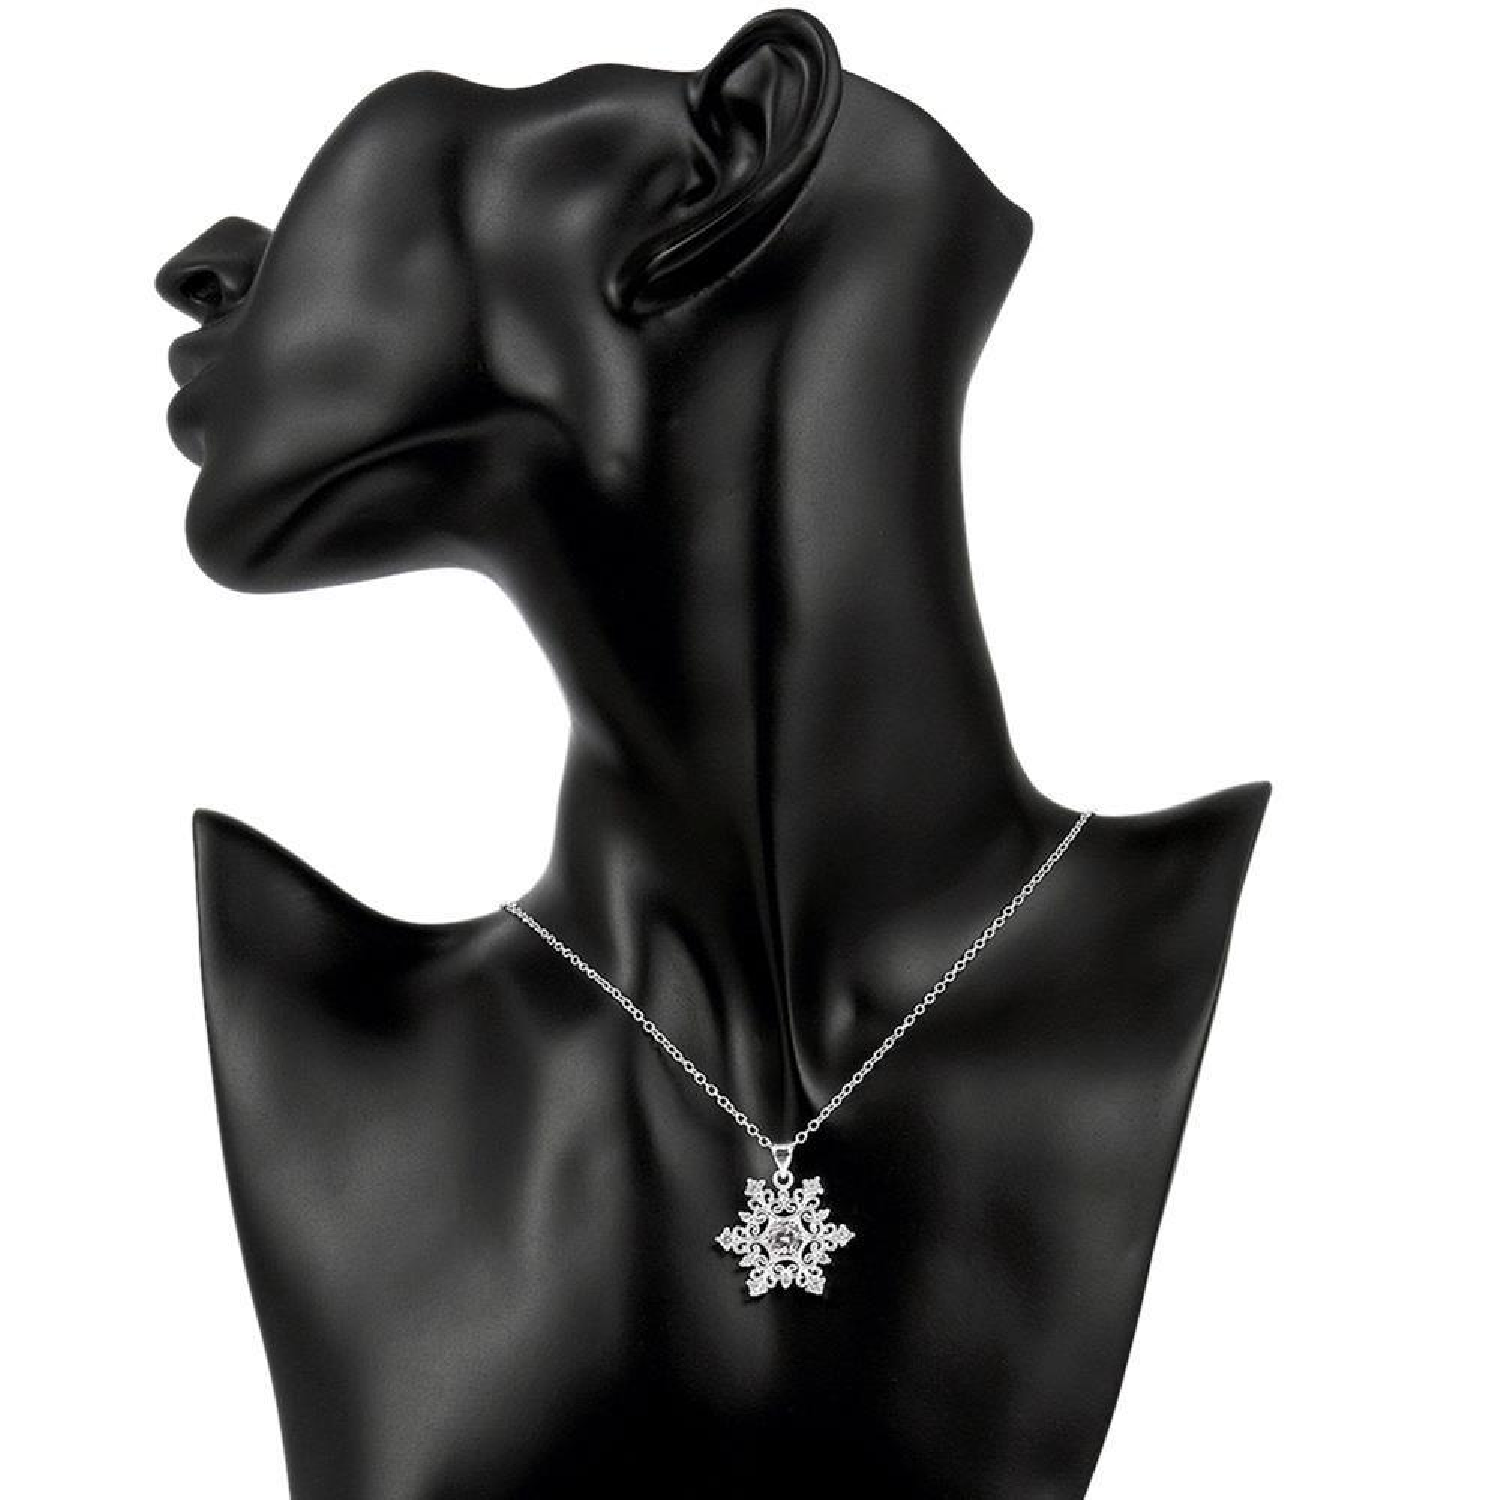 ab8af1341137b Swarovski Crystal Snowflake Necklace in 18K White Gold Plated from Hokemart